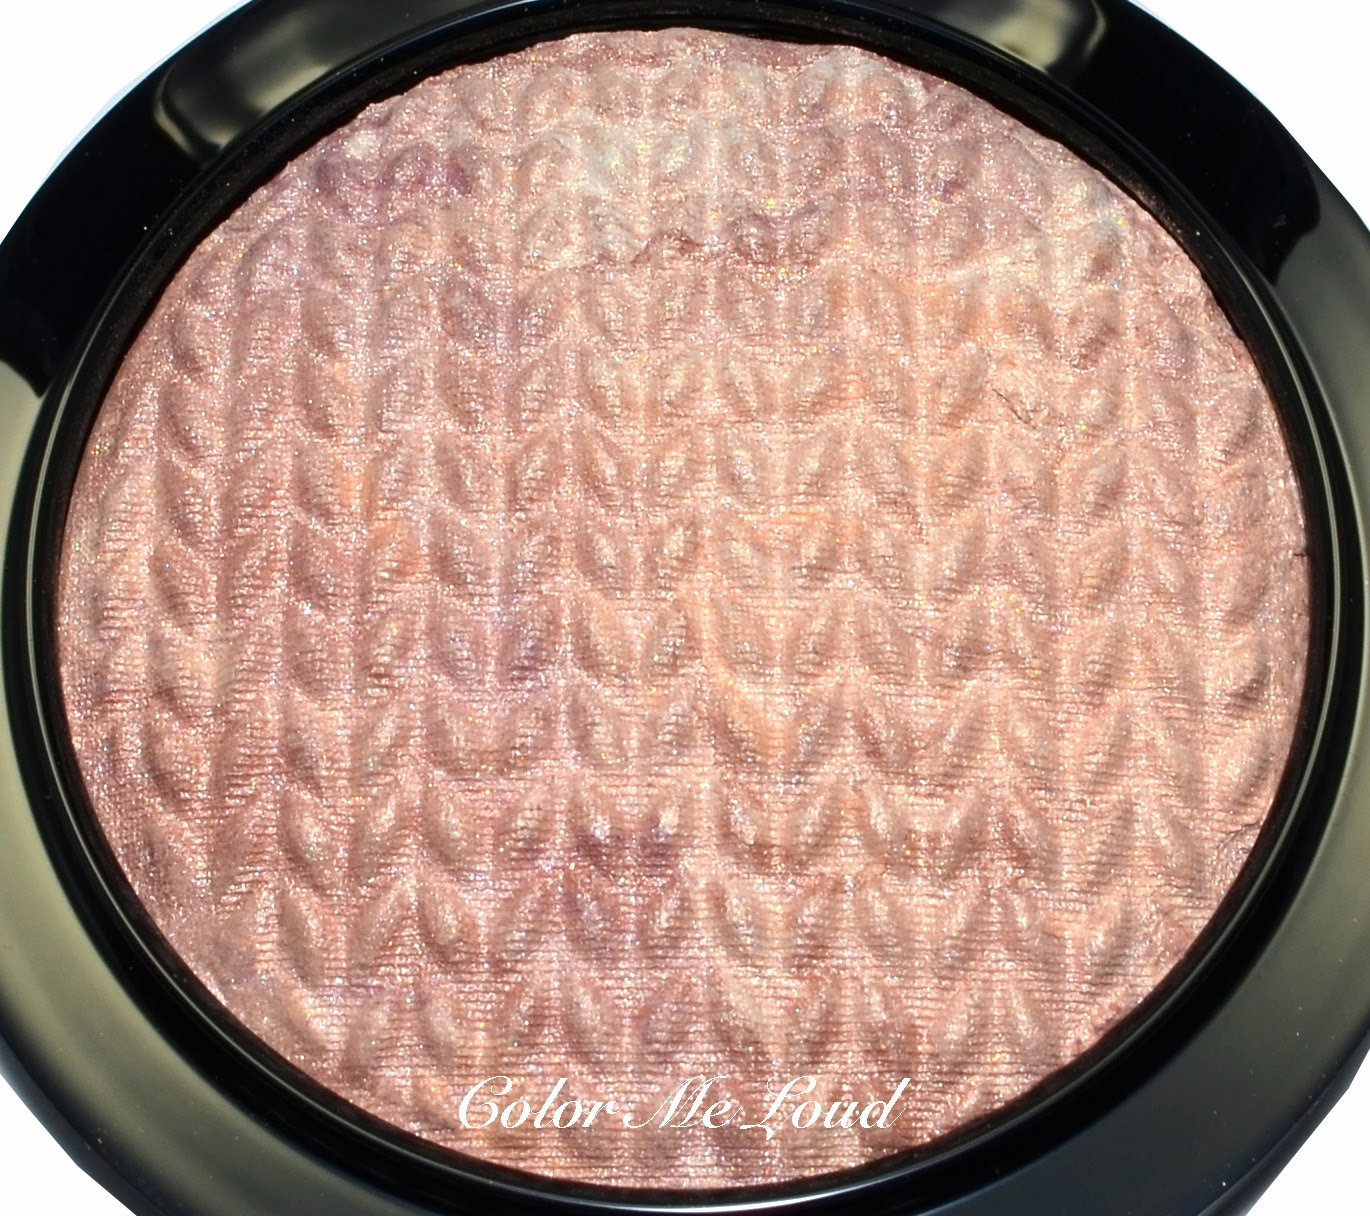 Close-up: Mineralize Skinfinish in Perfect Topping